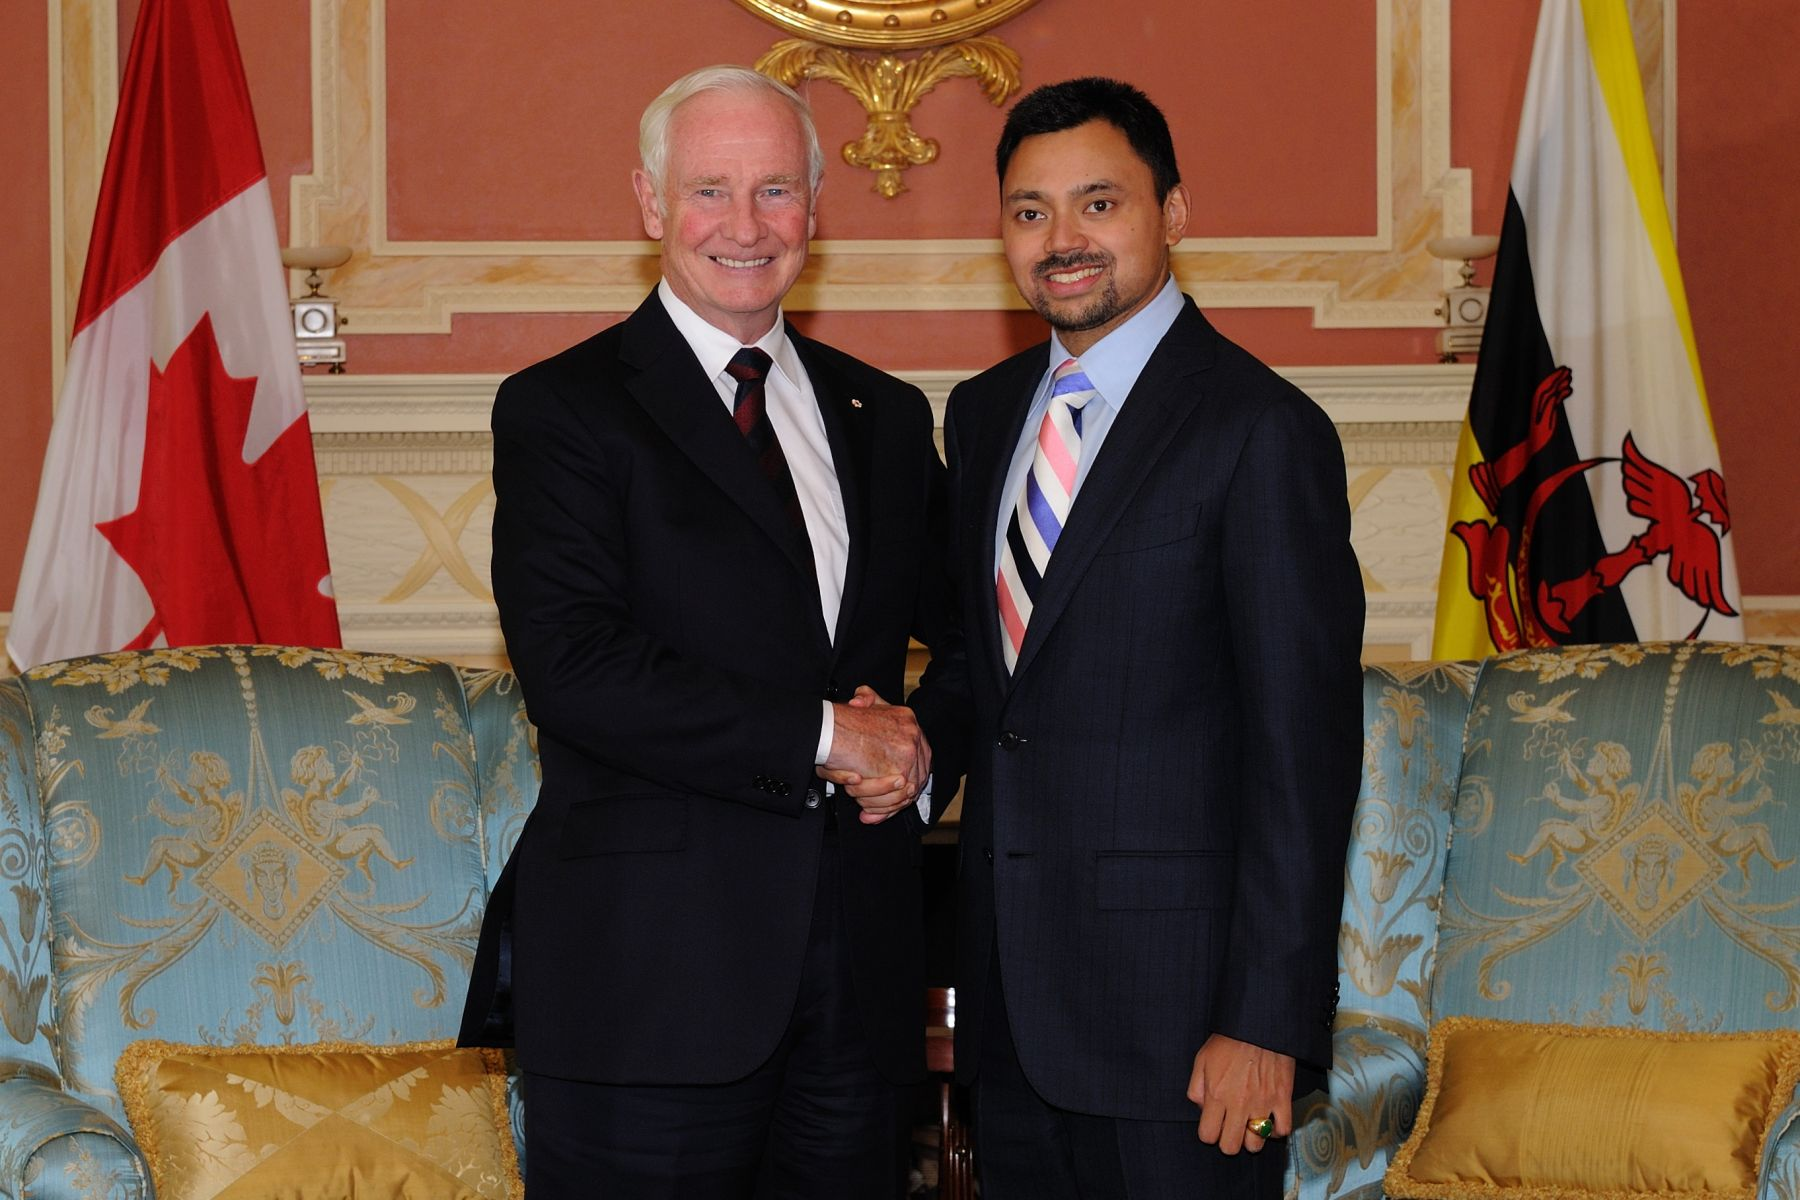 His Excellency the Right Honourable David Johnston, Governor General of Canada, welcomed His Royal Highness Prince Haji Al-Muhtadee Billah, The Crown Prince of Brunei Darussalam and Senior Minister to the Prime Minister of Brunei Darussalam, on September 16, 2011.